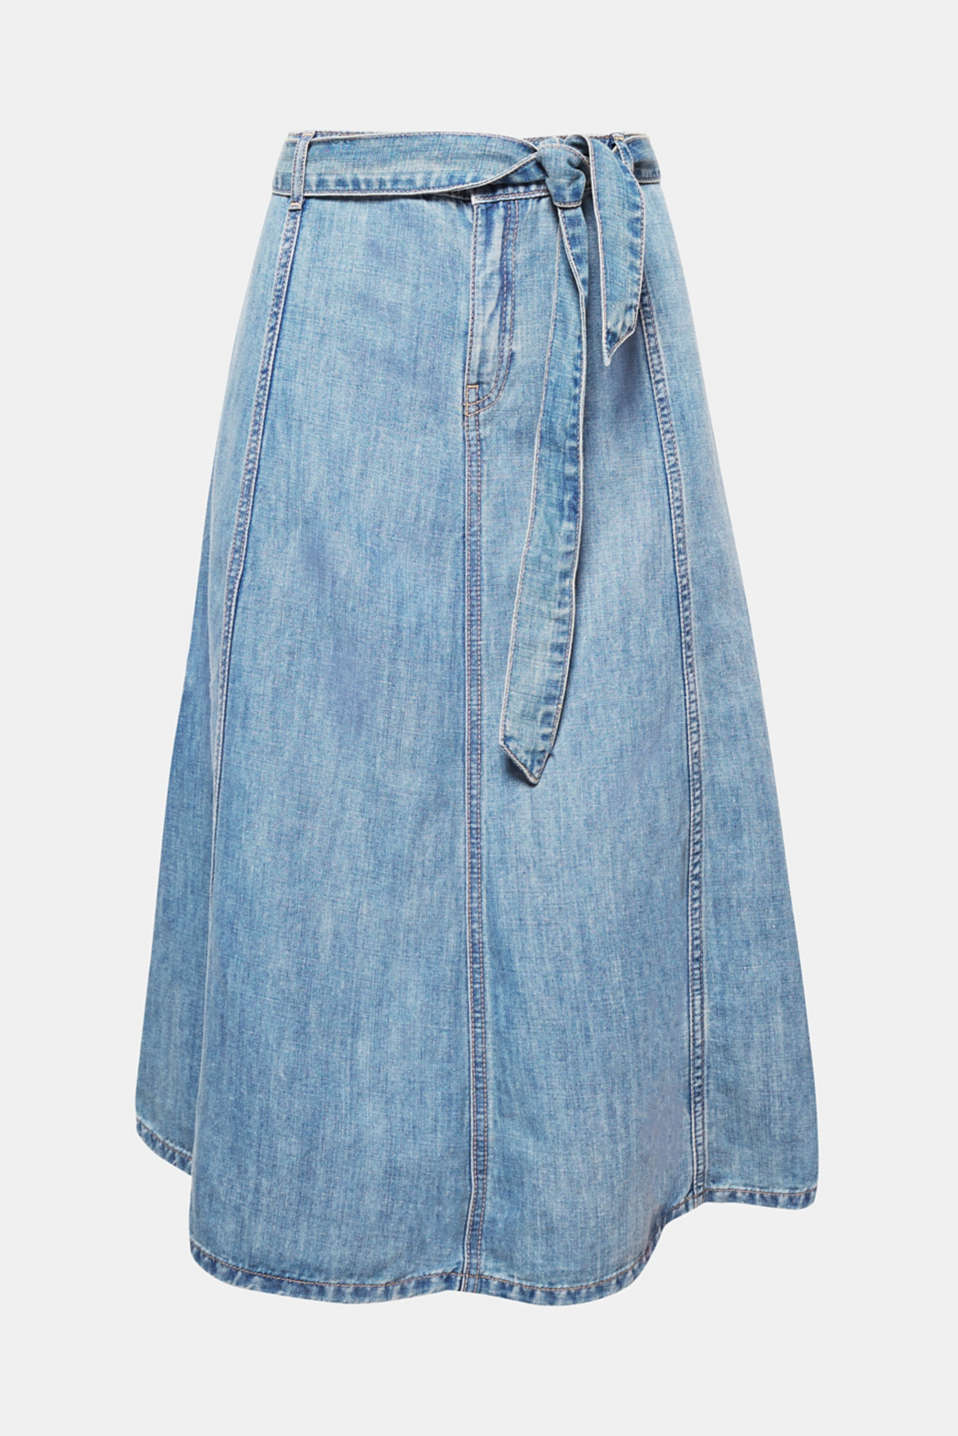 Denim at its best: This swirling denim skirt in a classic A-line design with a tie-around belt is sure to add a cool, fresh kick to your summer outfit!